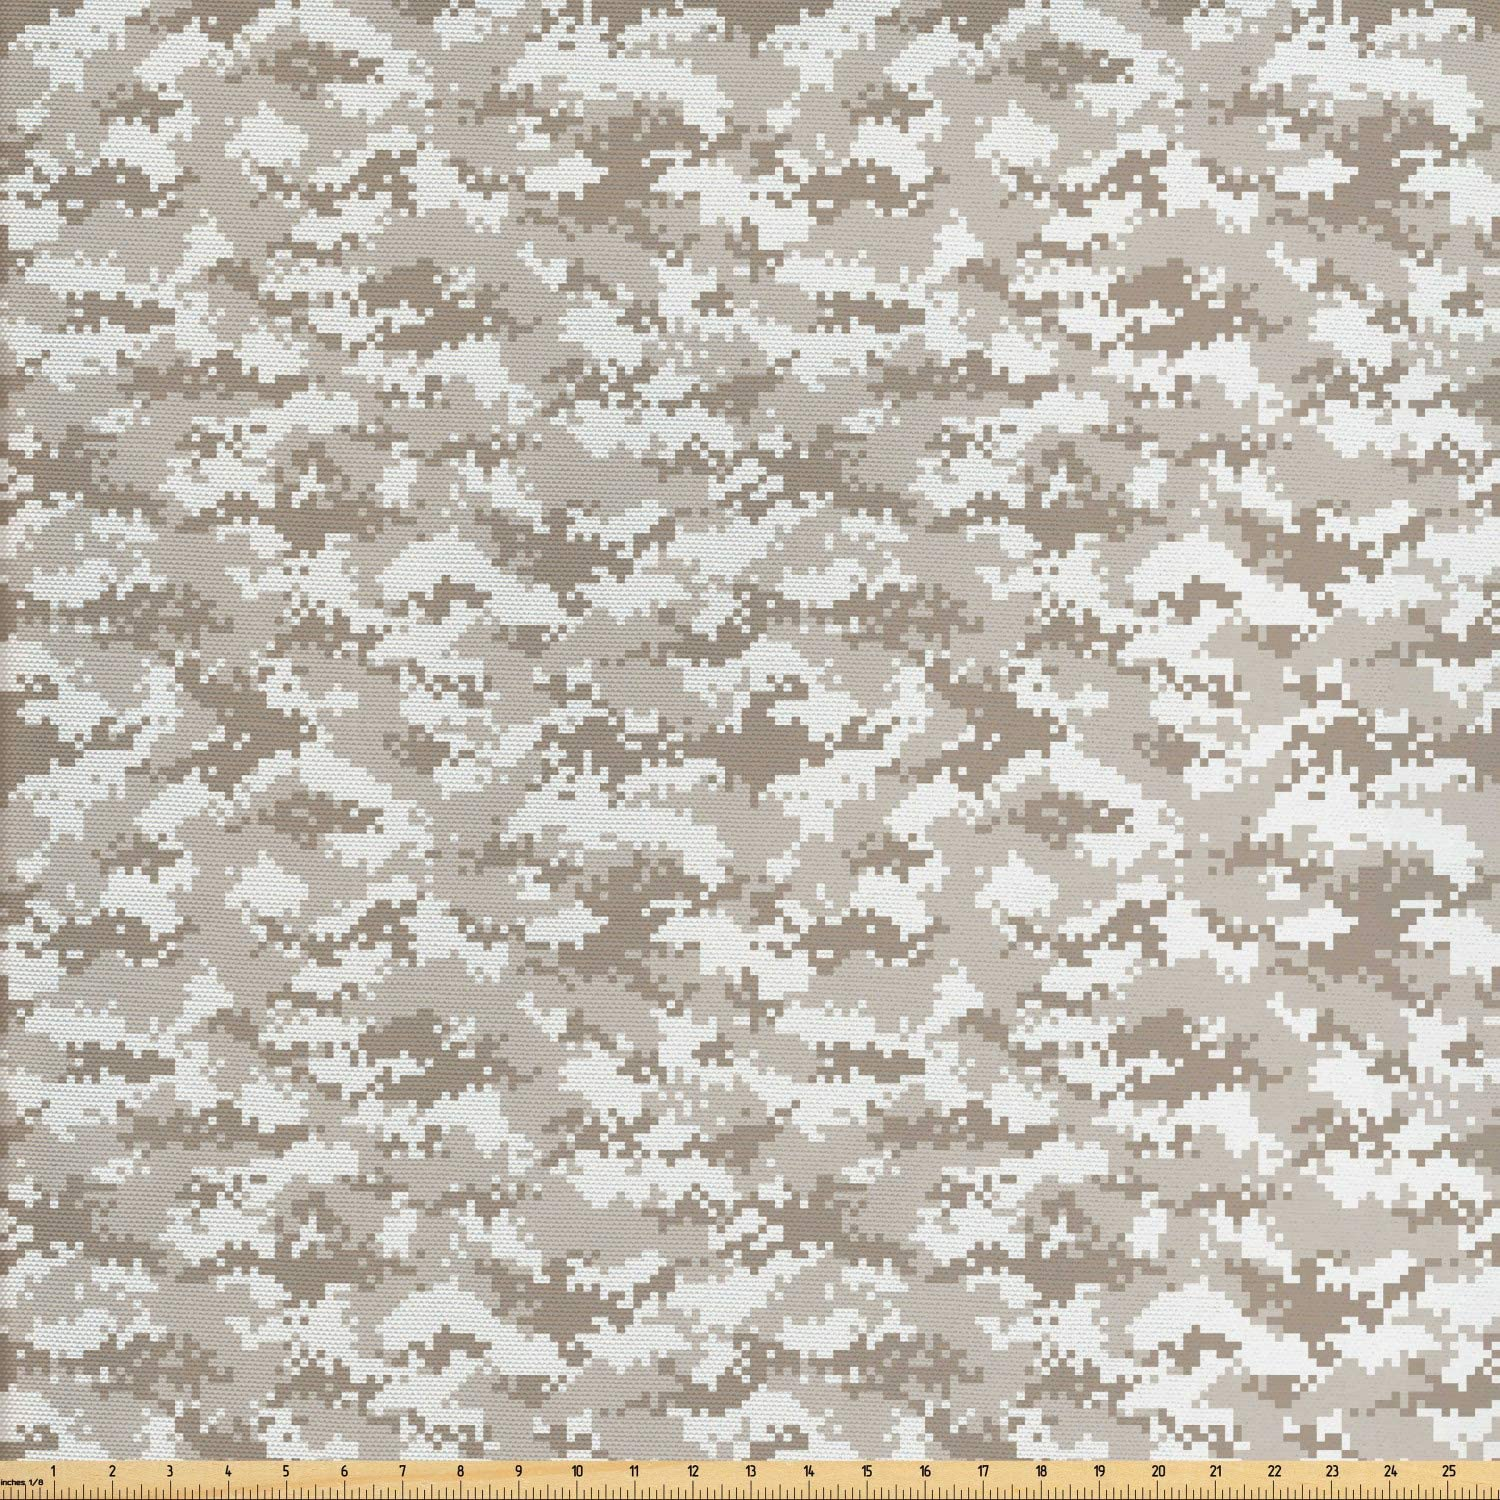 Ambesonne Camo Fabric by The Yard, Modern Repetitive Abstract Spots and in Pixel Art in Neutral Tones, Decorative Fabric for Upholstery and Home Accents, 1 Yard, Tan Dust